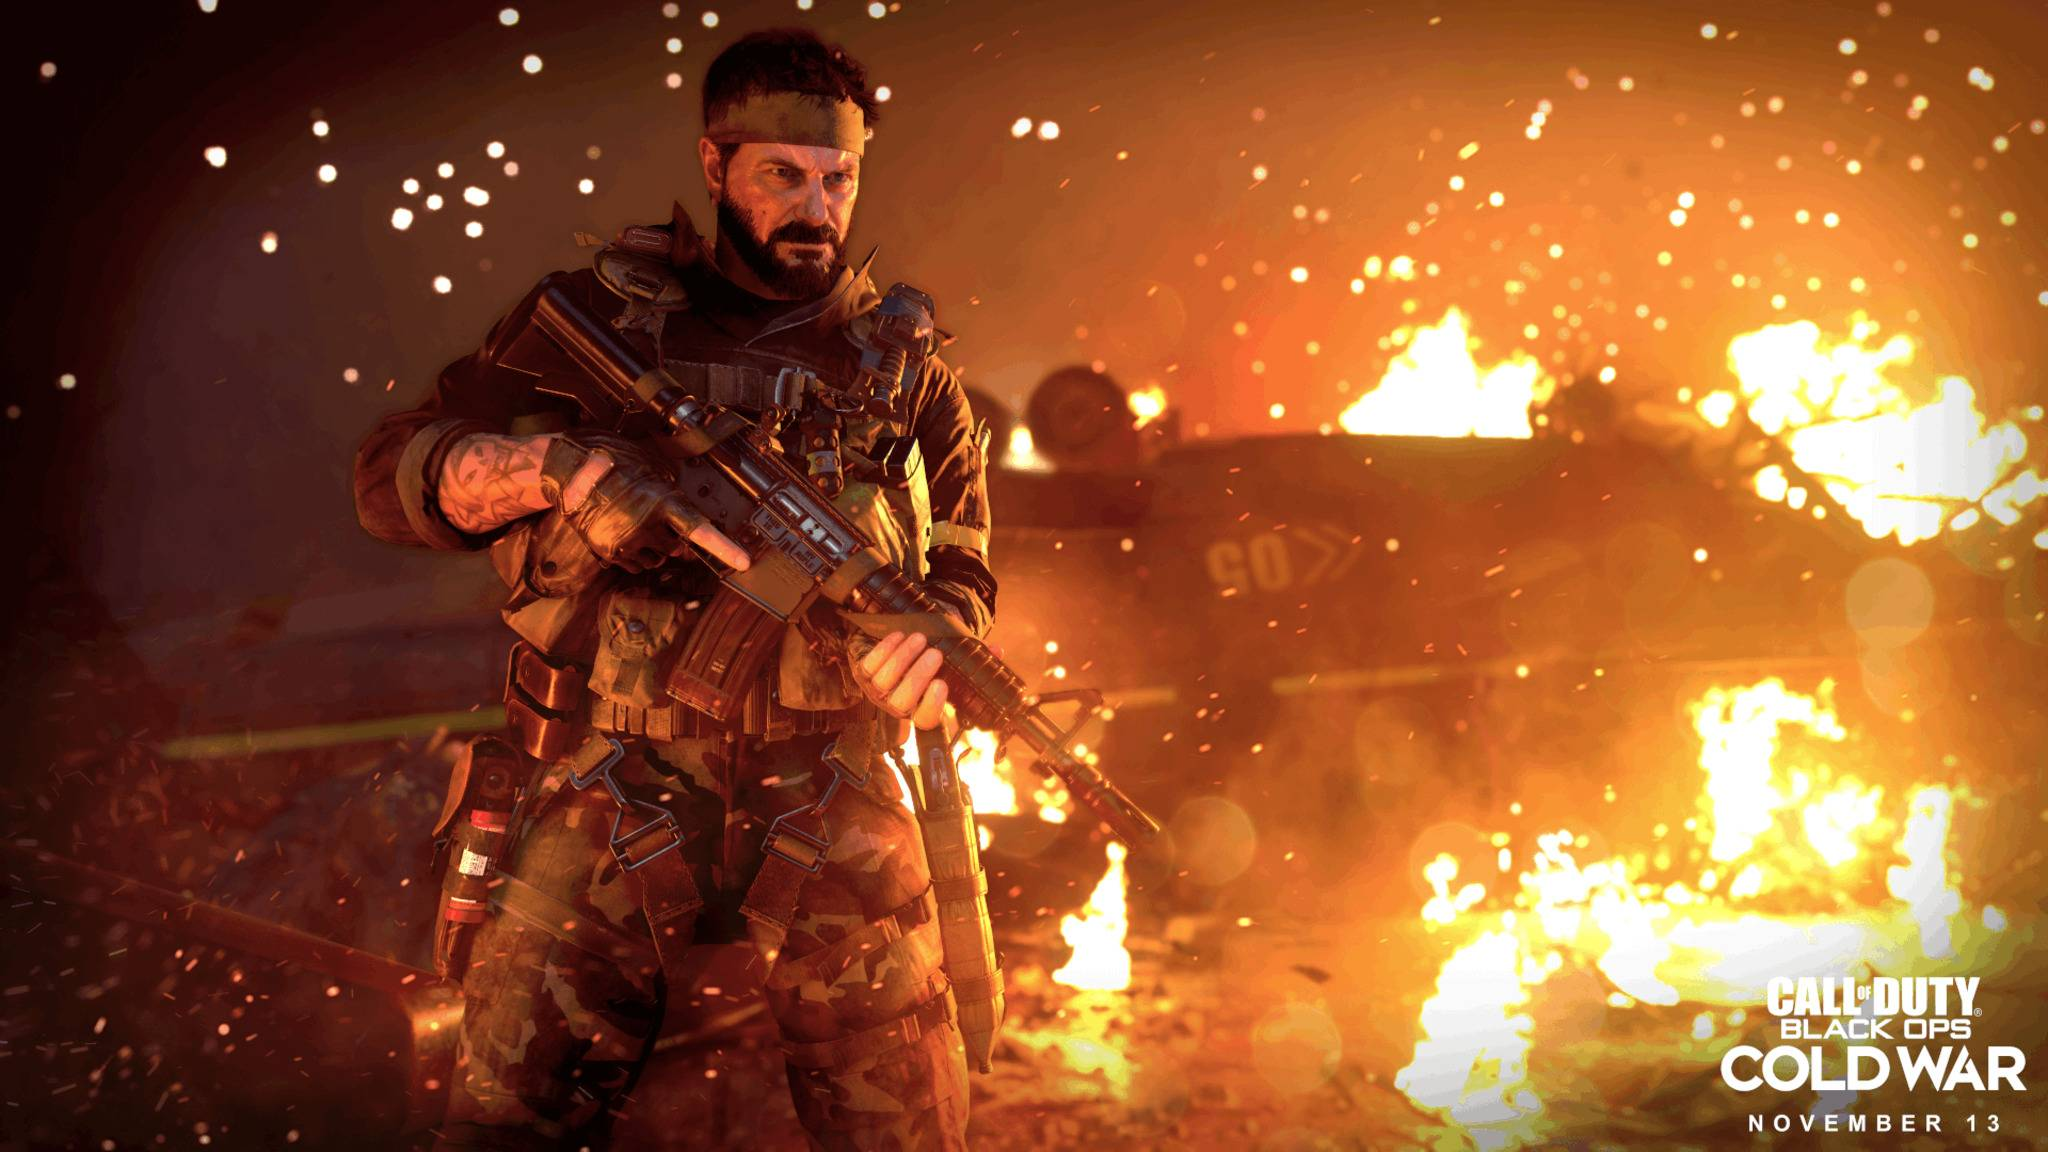 call-of-duty-black-ops-cold-war-feuer-1